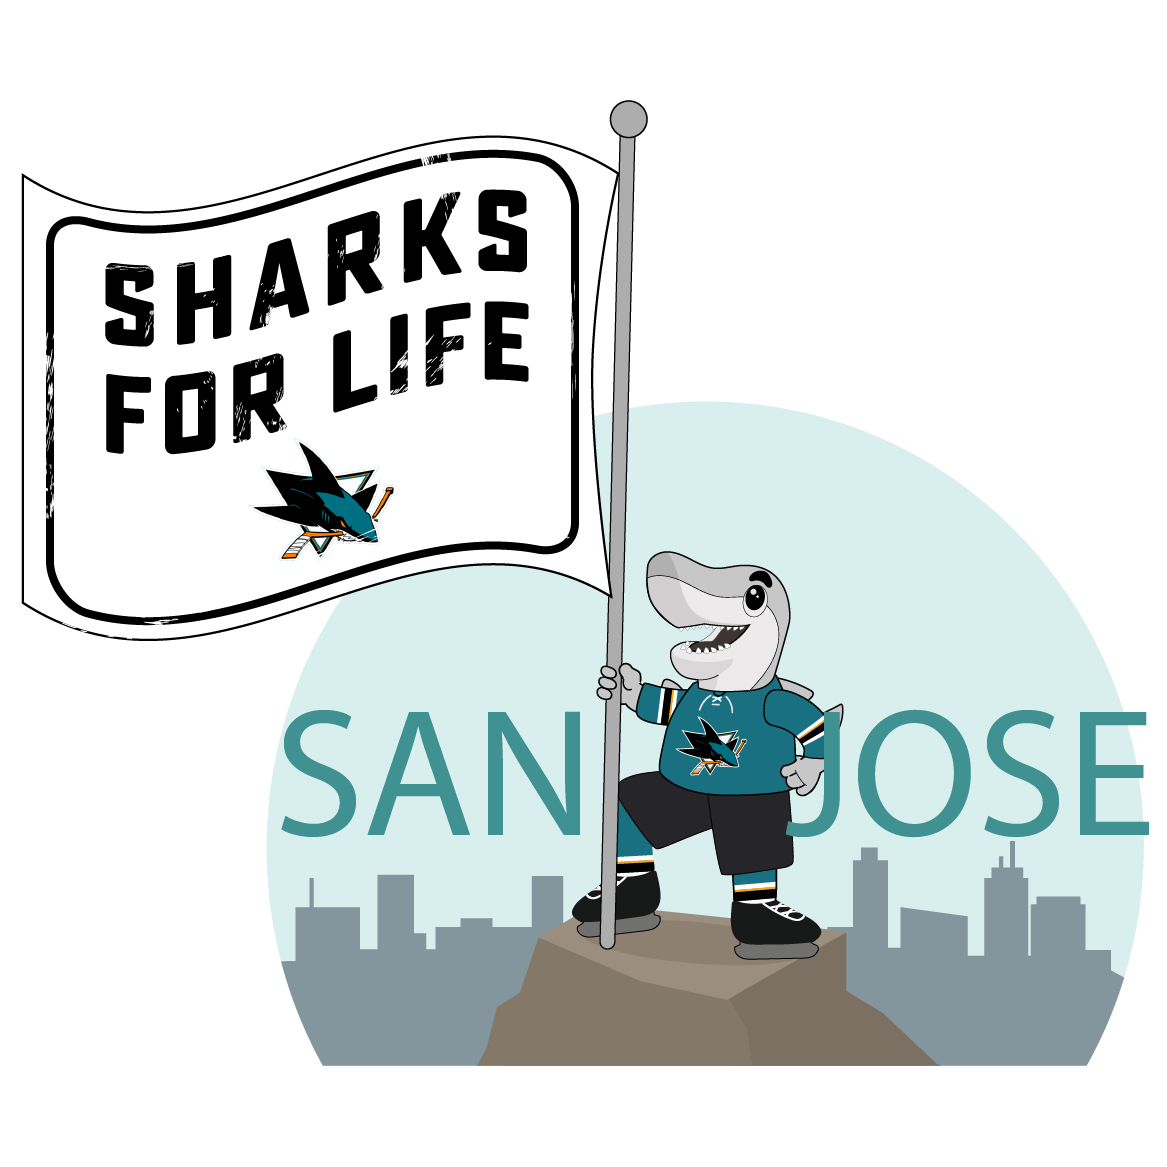 S.J. Sharkie Sticker Pack messages sticker-8